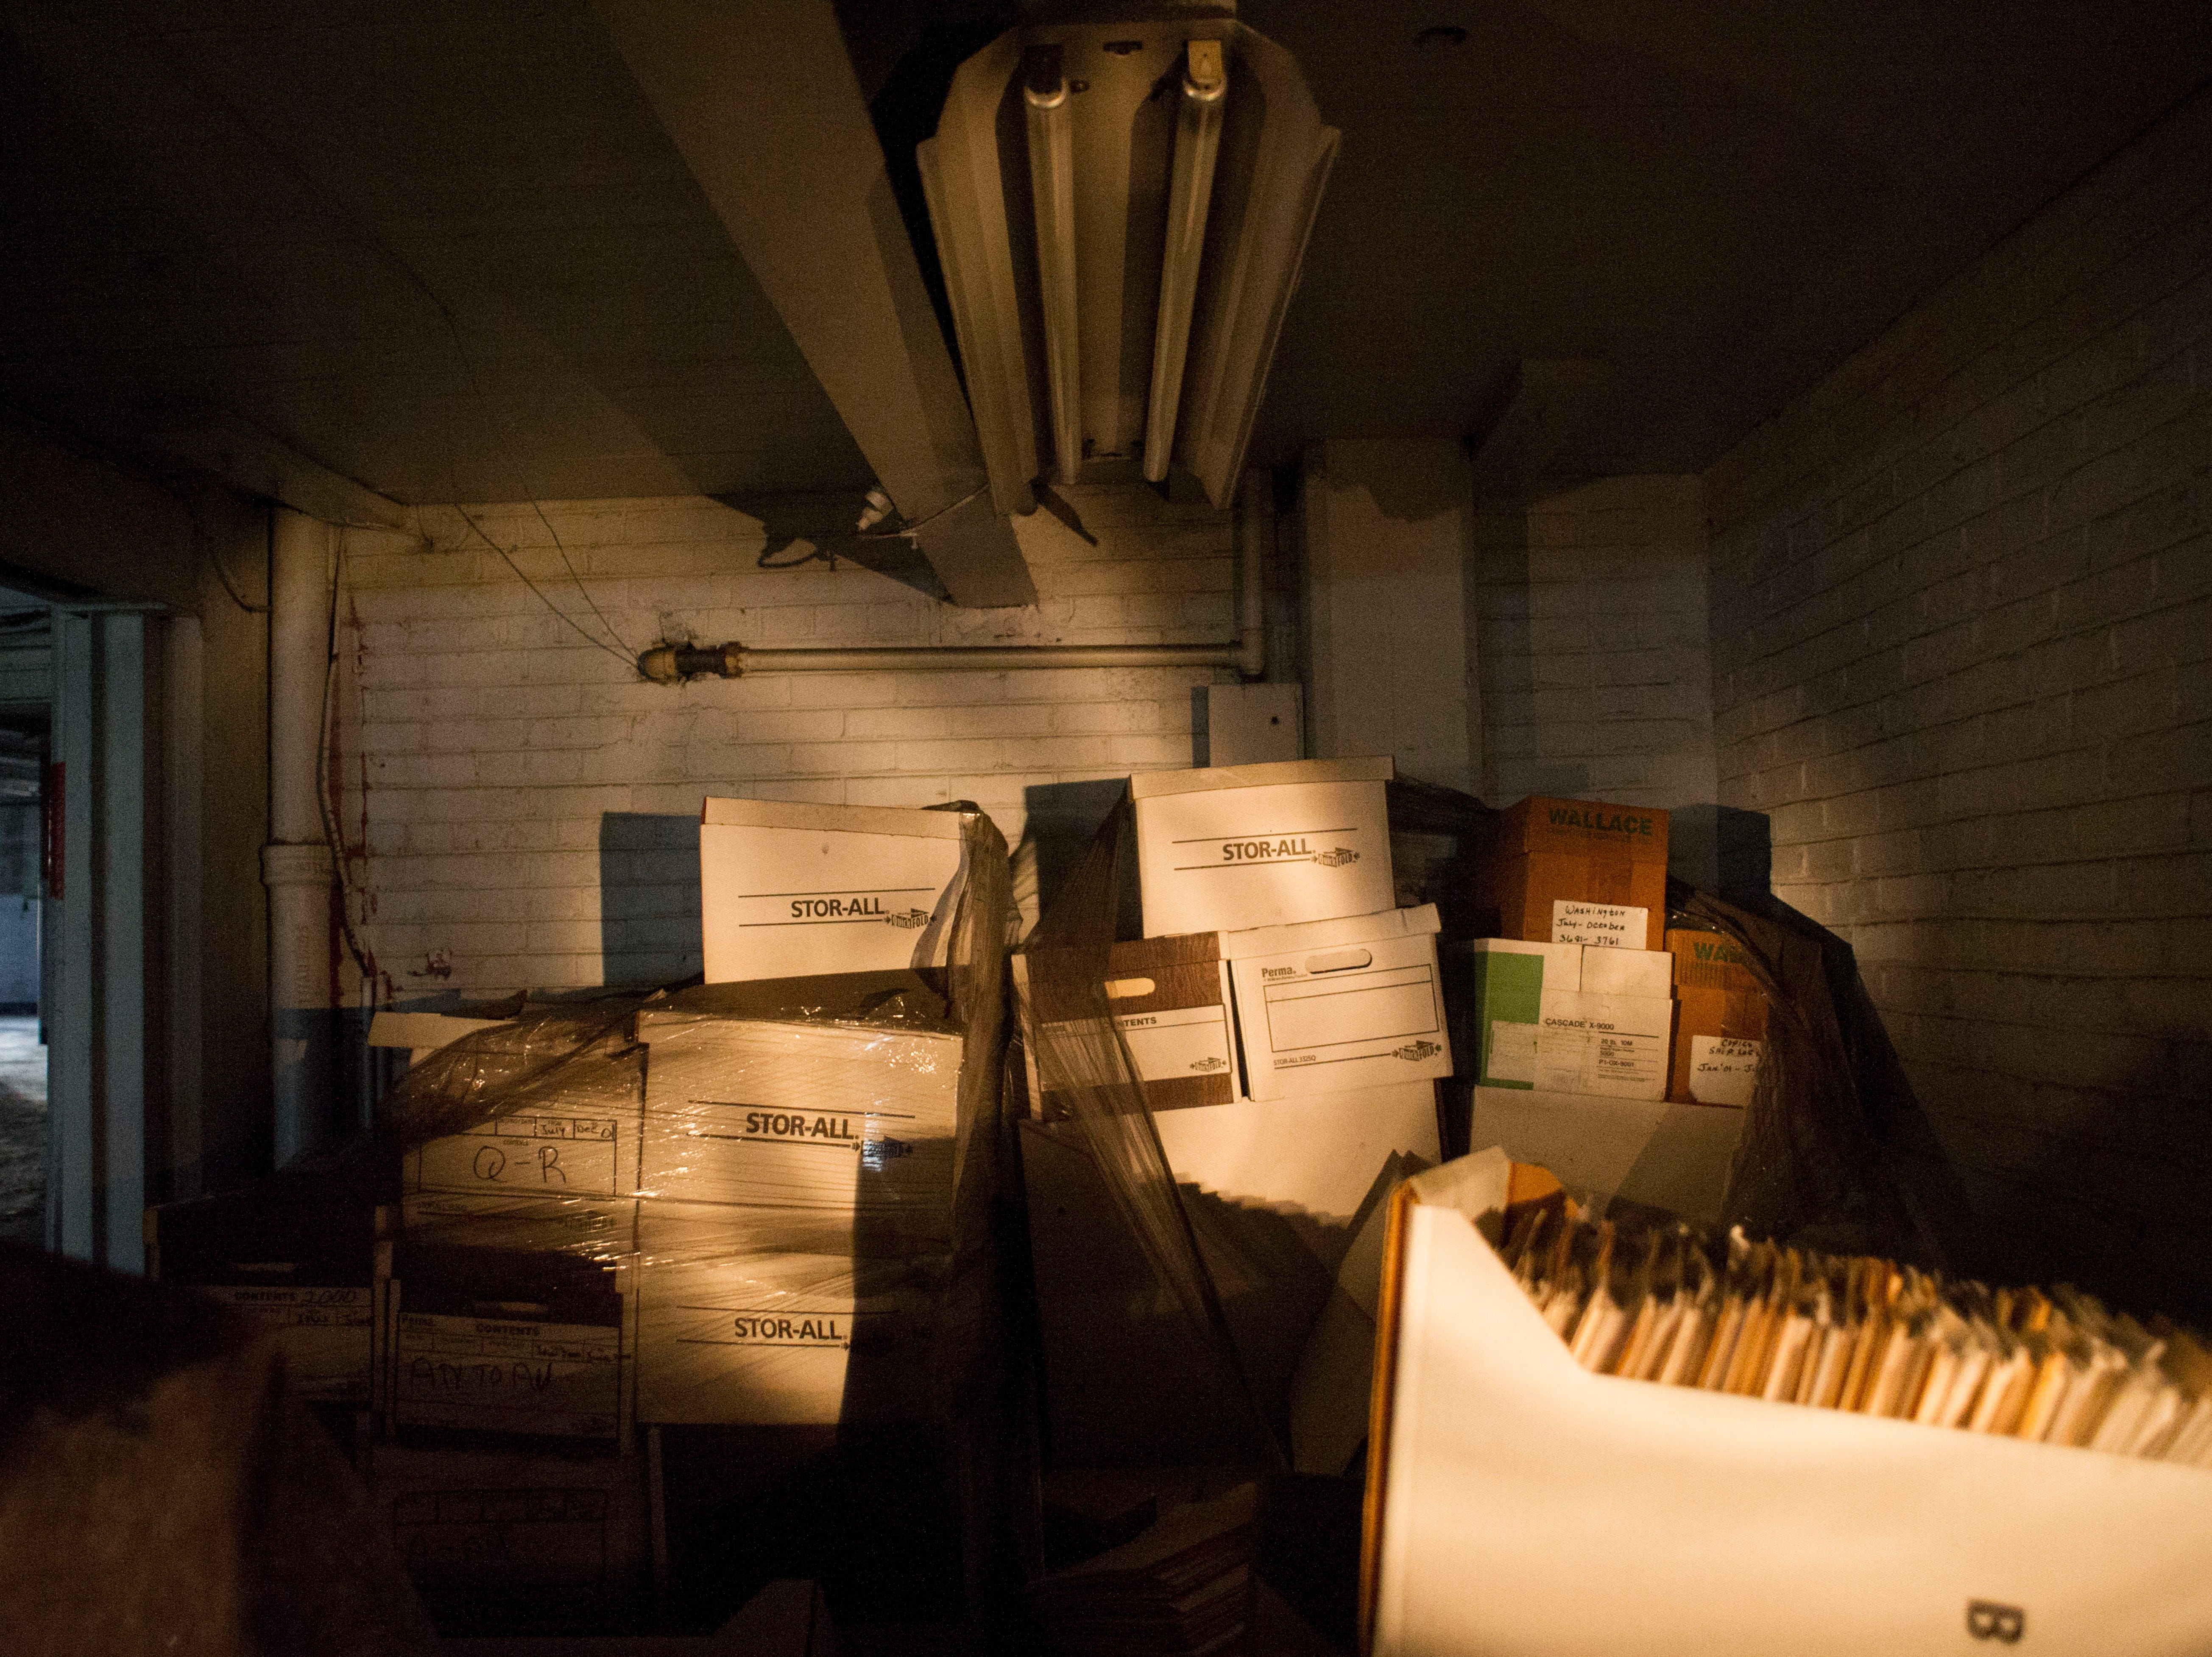 Files fill a storage room at the Standard Knitting Mill building on Thursday, November 15, 2012.